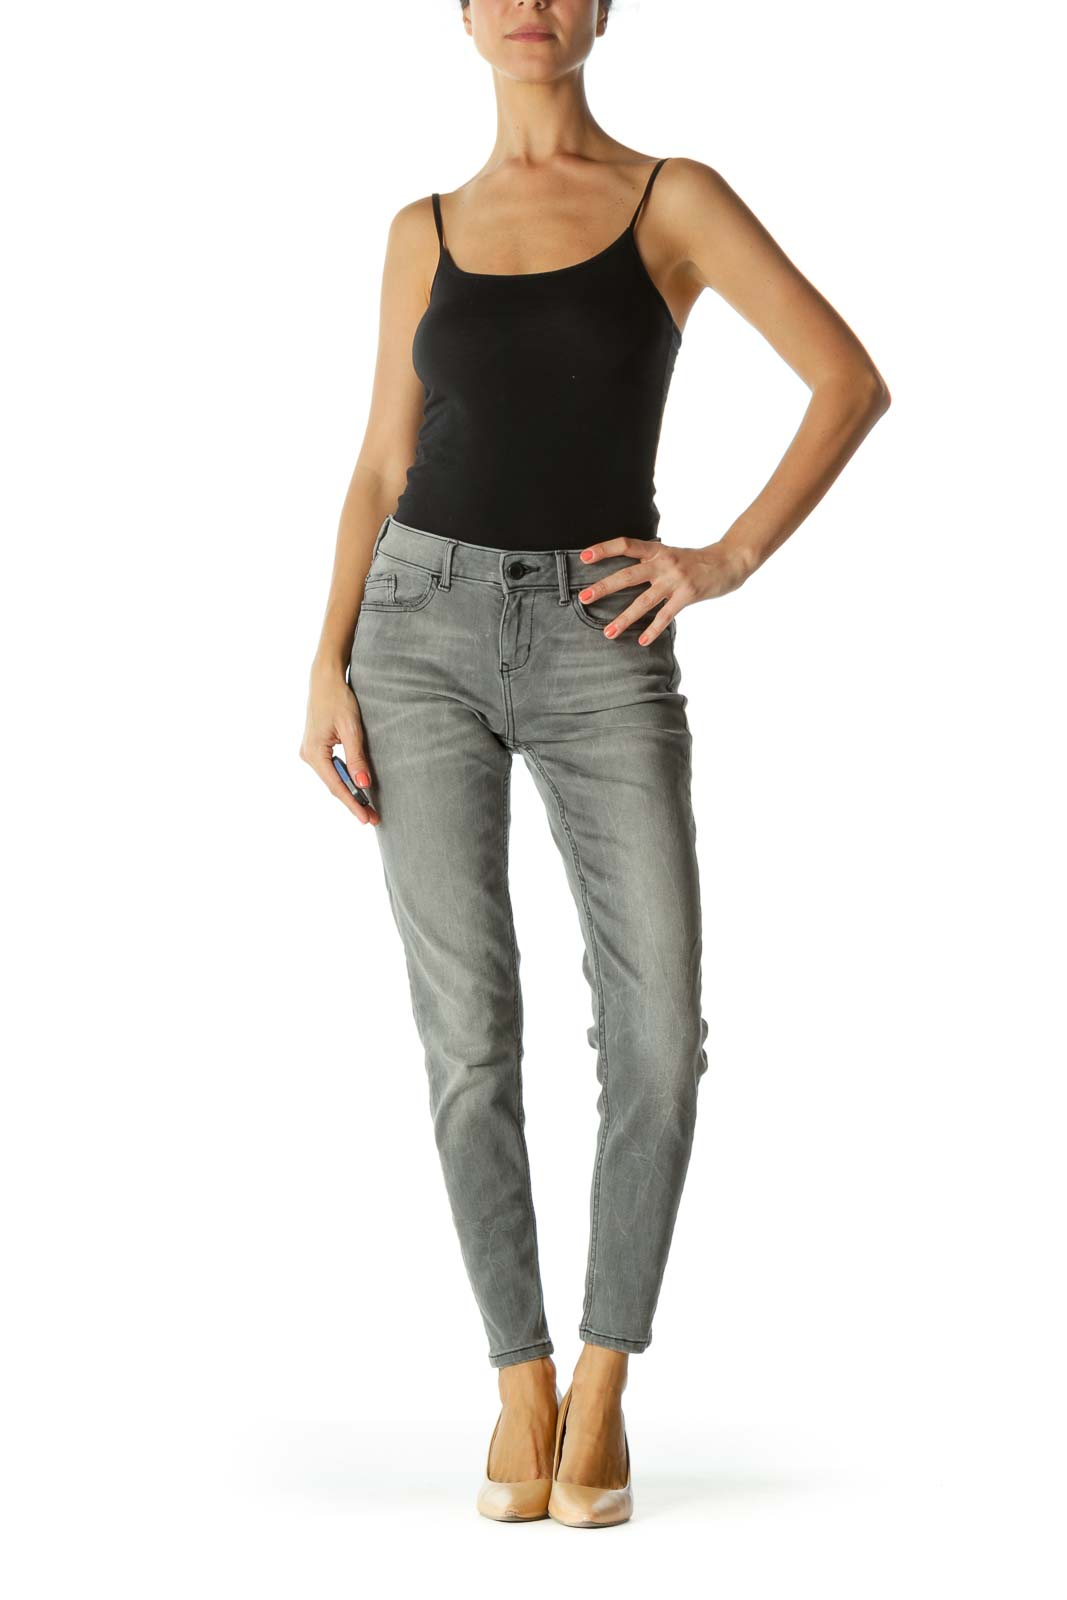 Gray Black Slight Pocket Distressing Zipper-Ankle Detail Stretch Pants